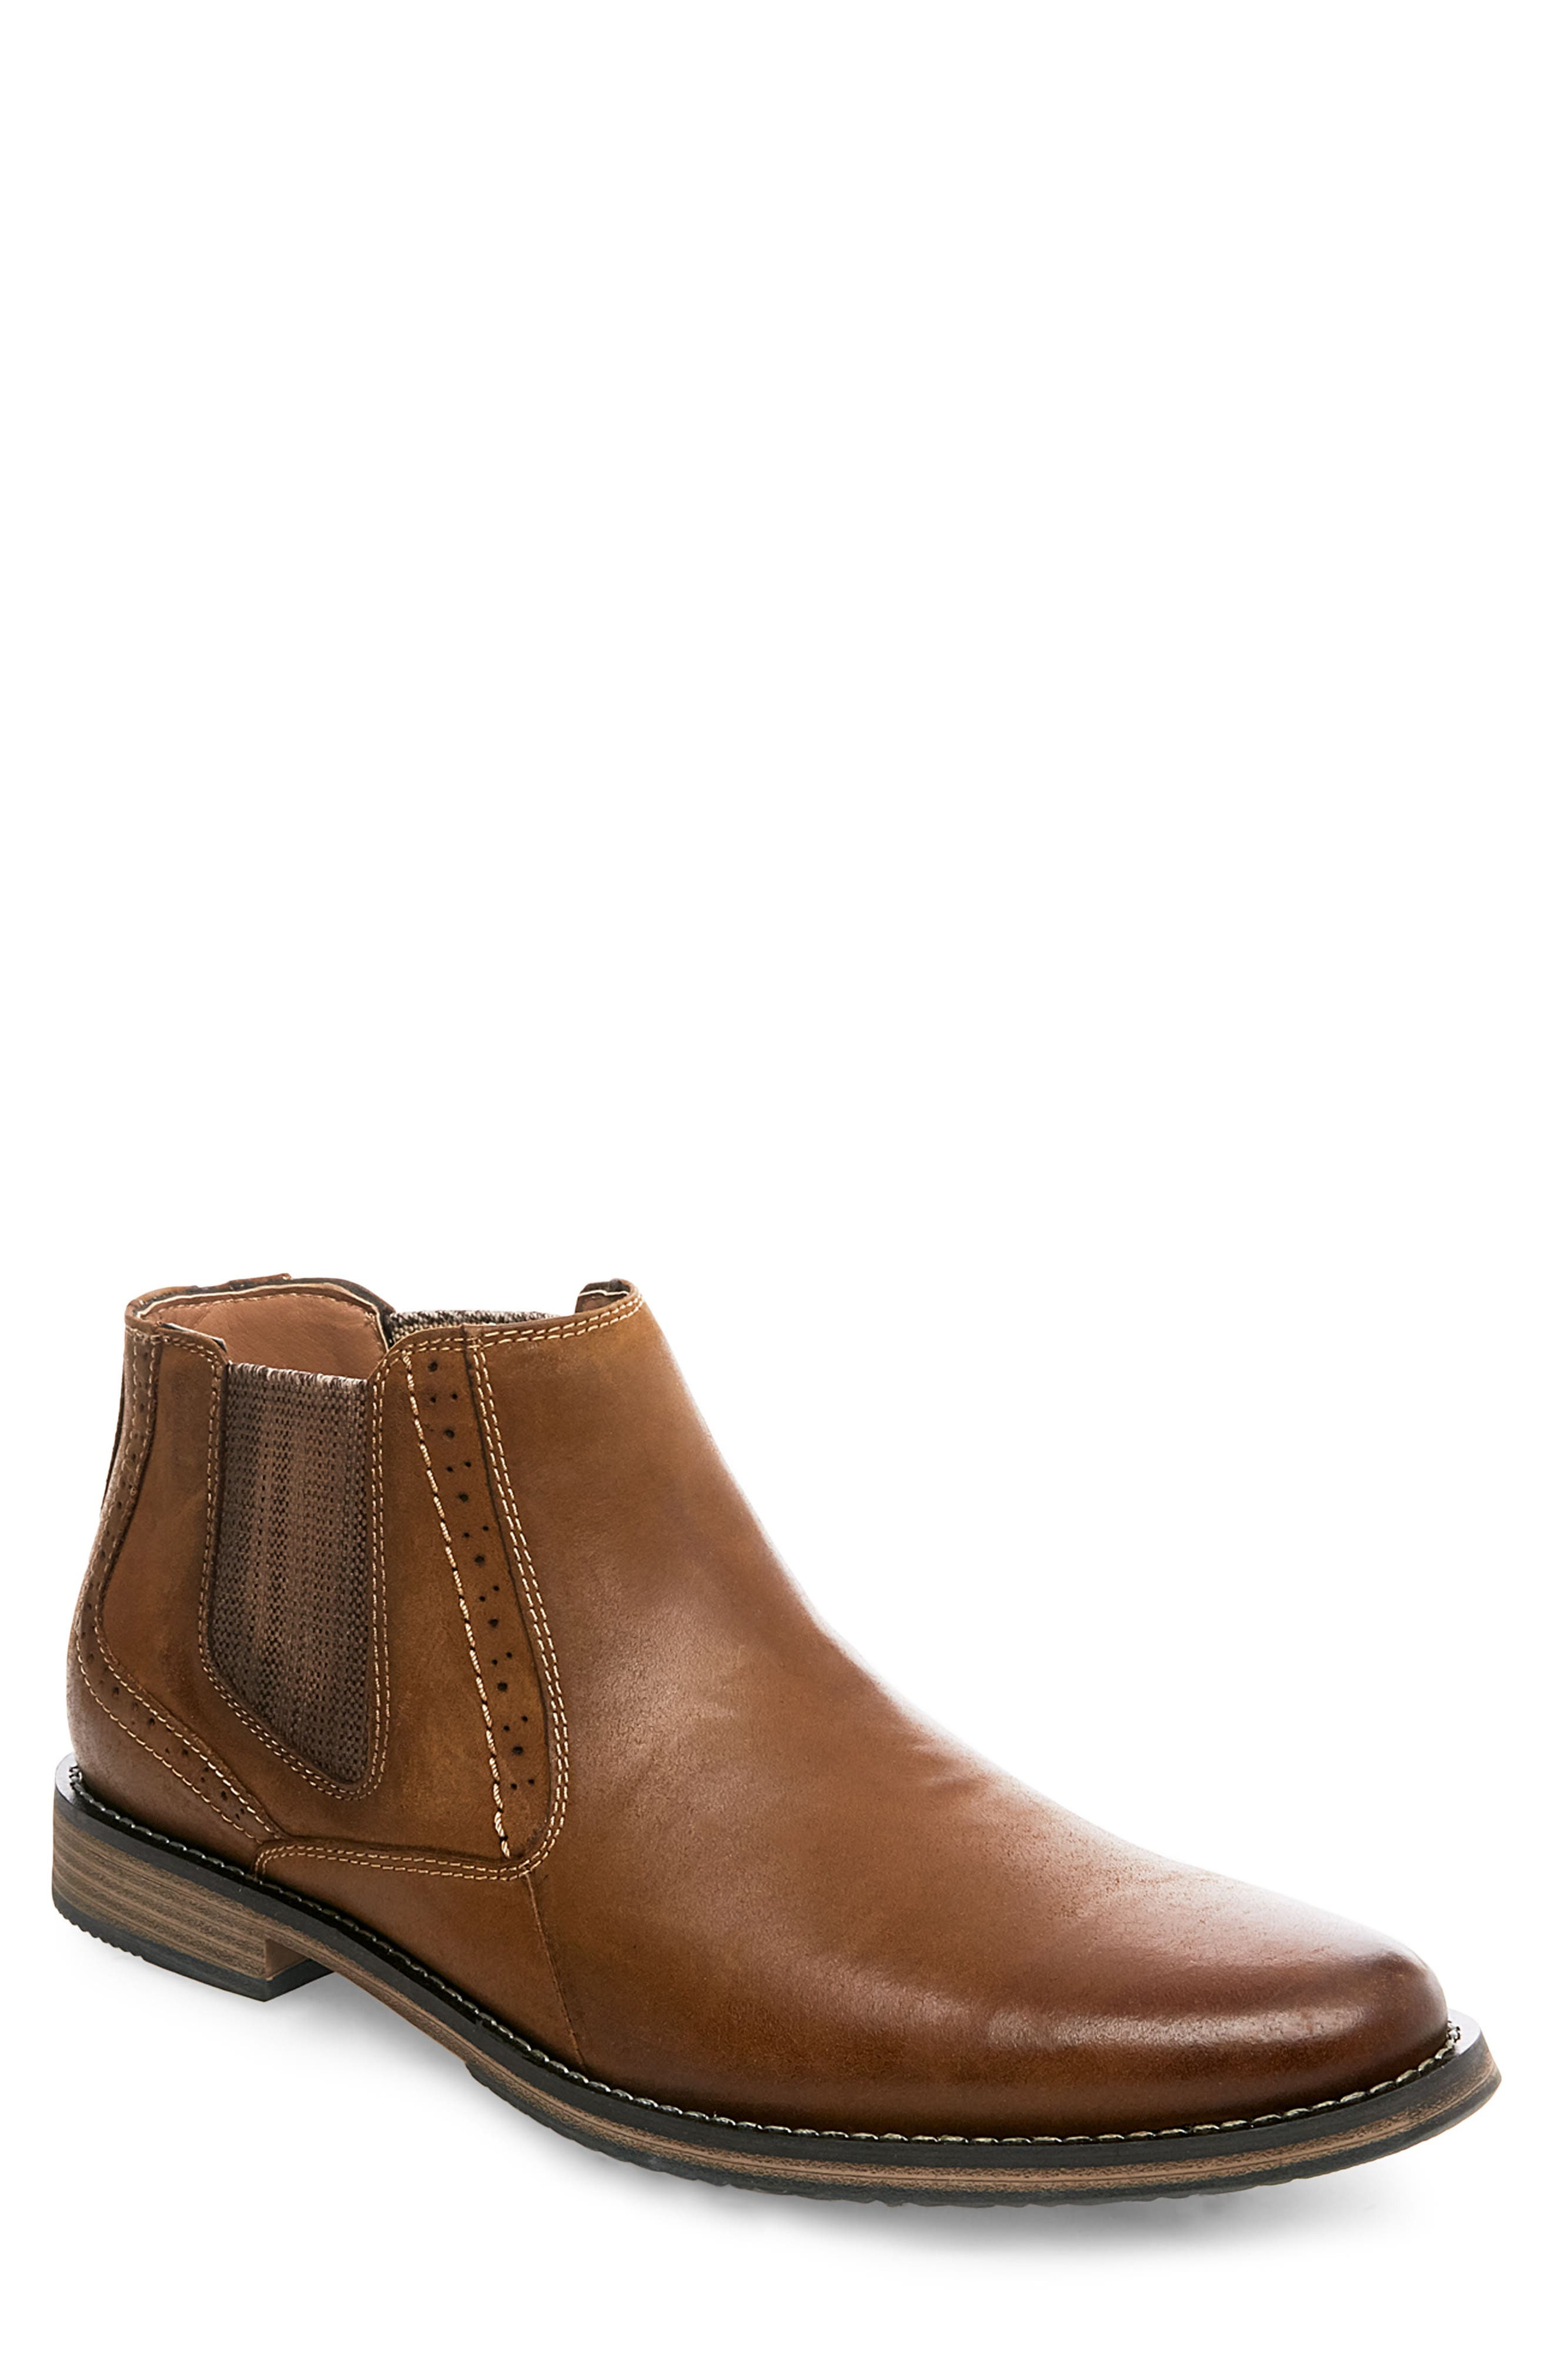 Paxton Chelsea Boot,                             Main thumbnail 1, color,                             Camel Leather